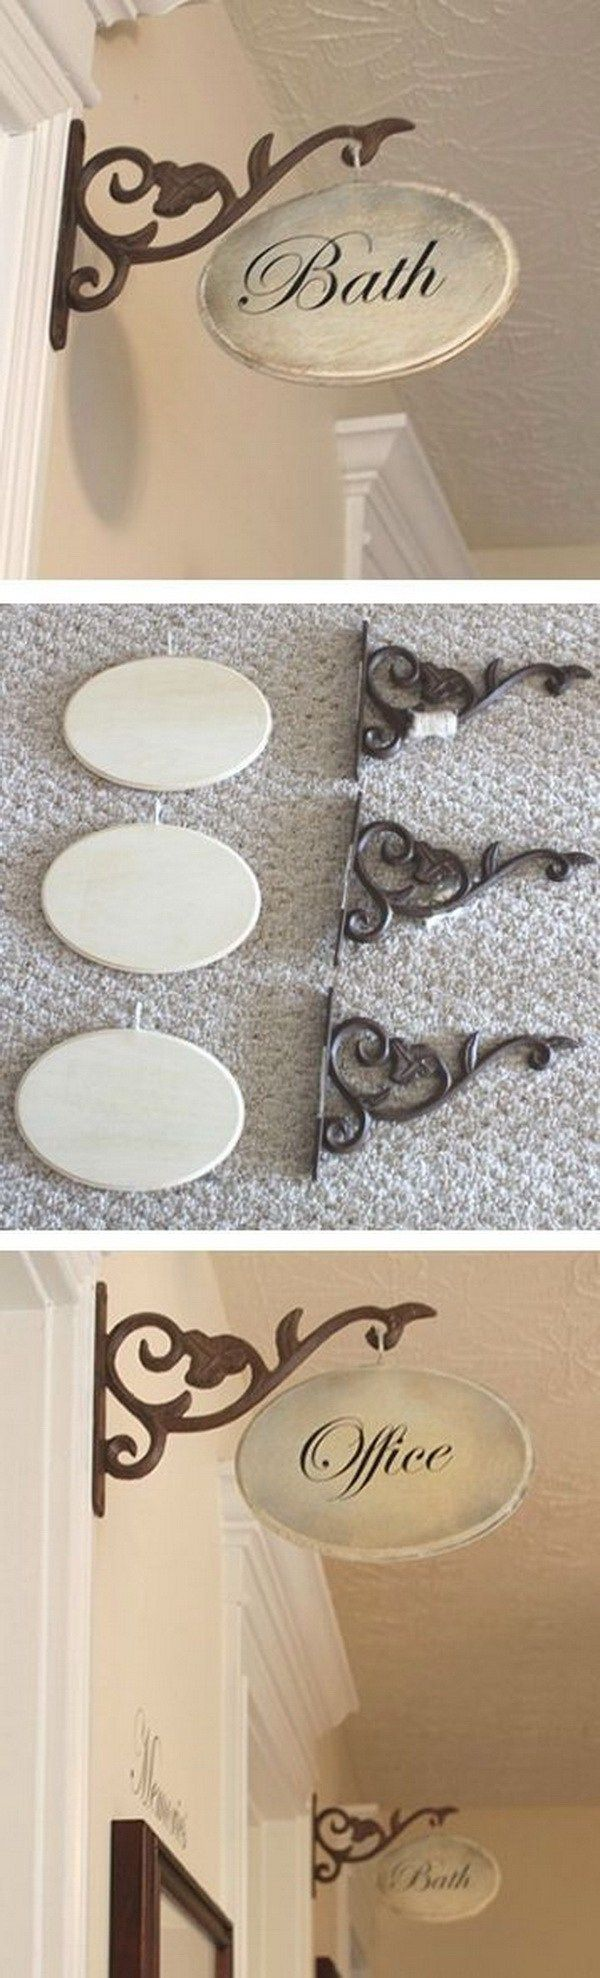 Diy Home Decor Signs Delectable Budget Friendly Diy Home Decor Projects With Tutorials  Easy Diy Decorating Inspiration